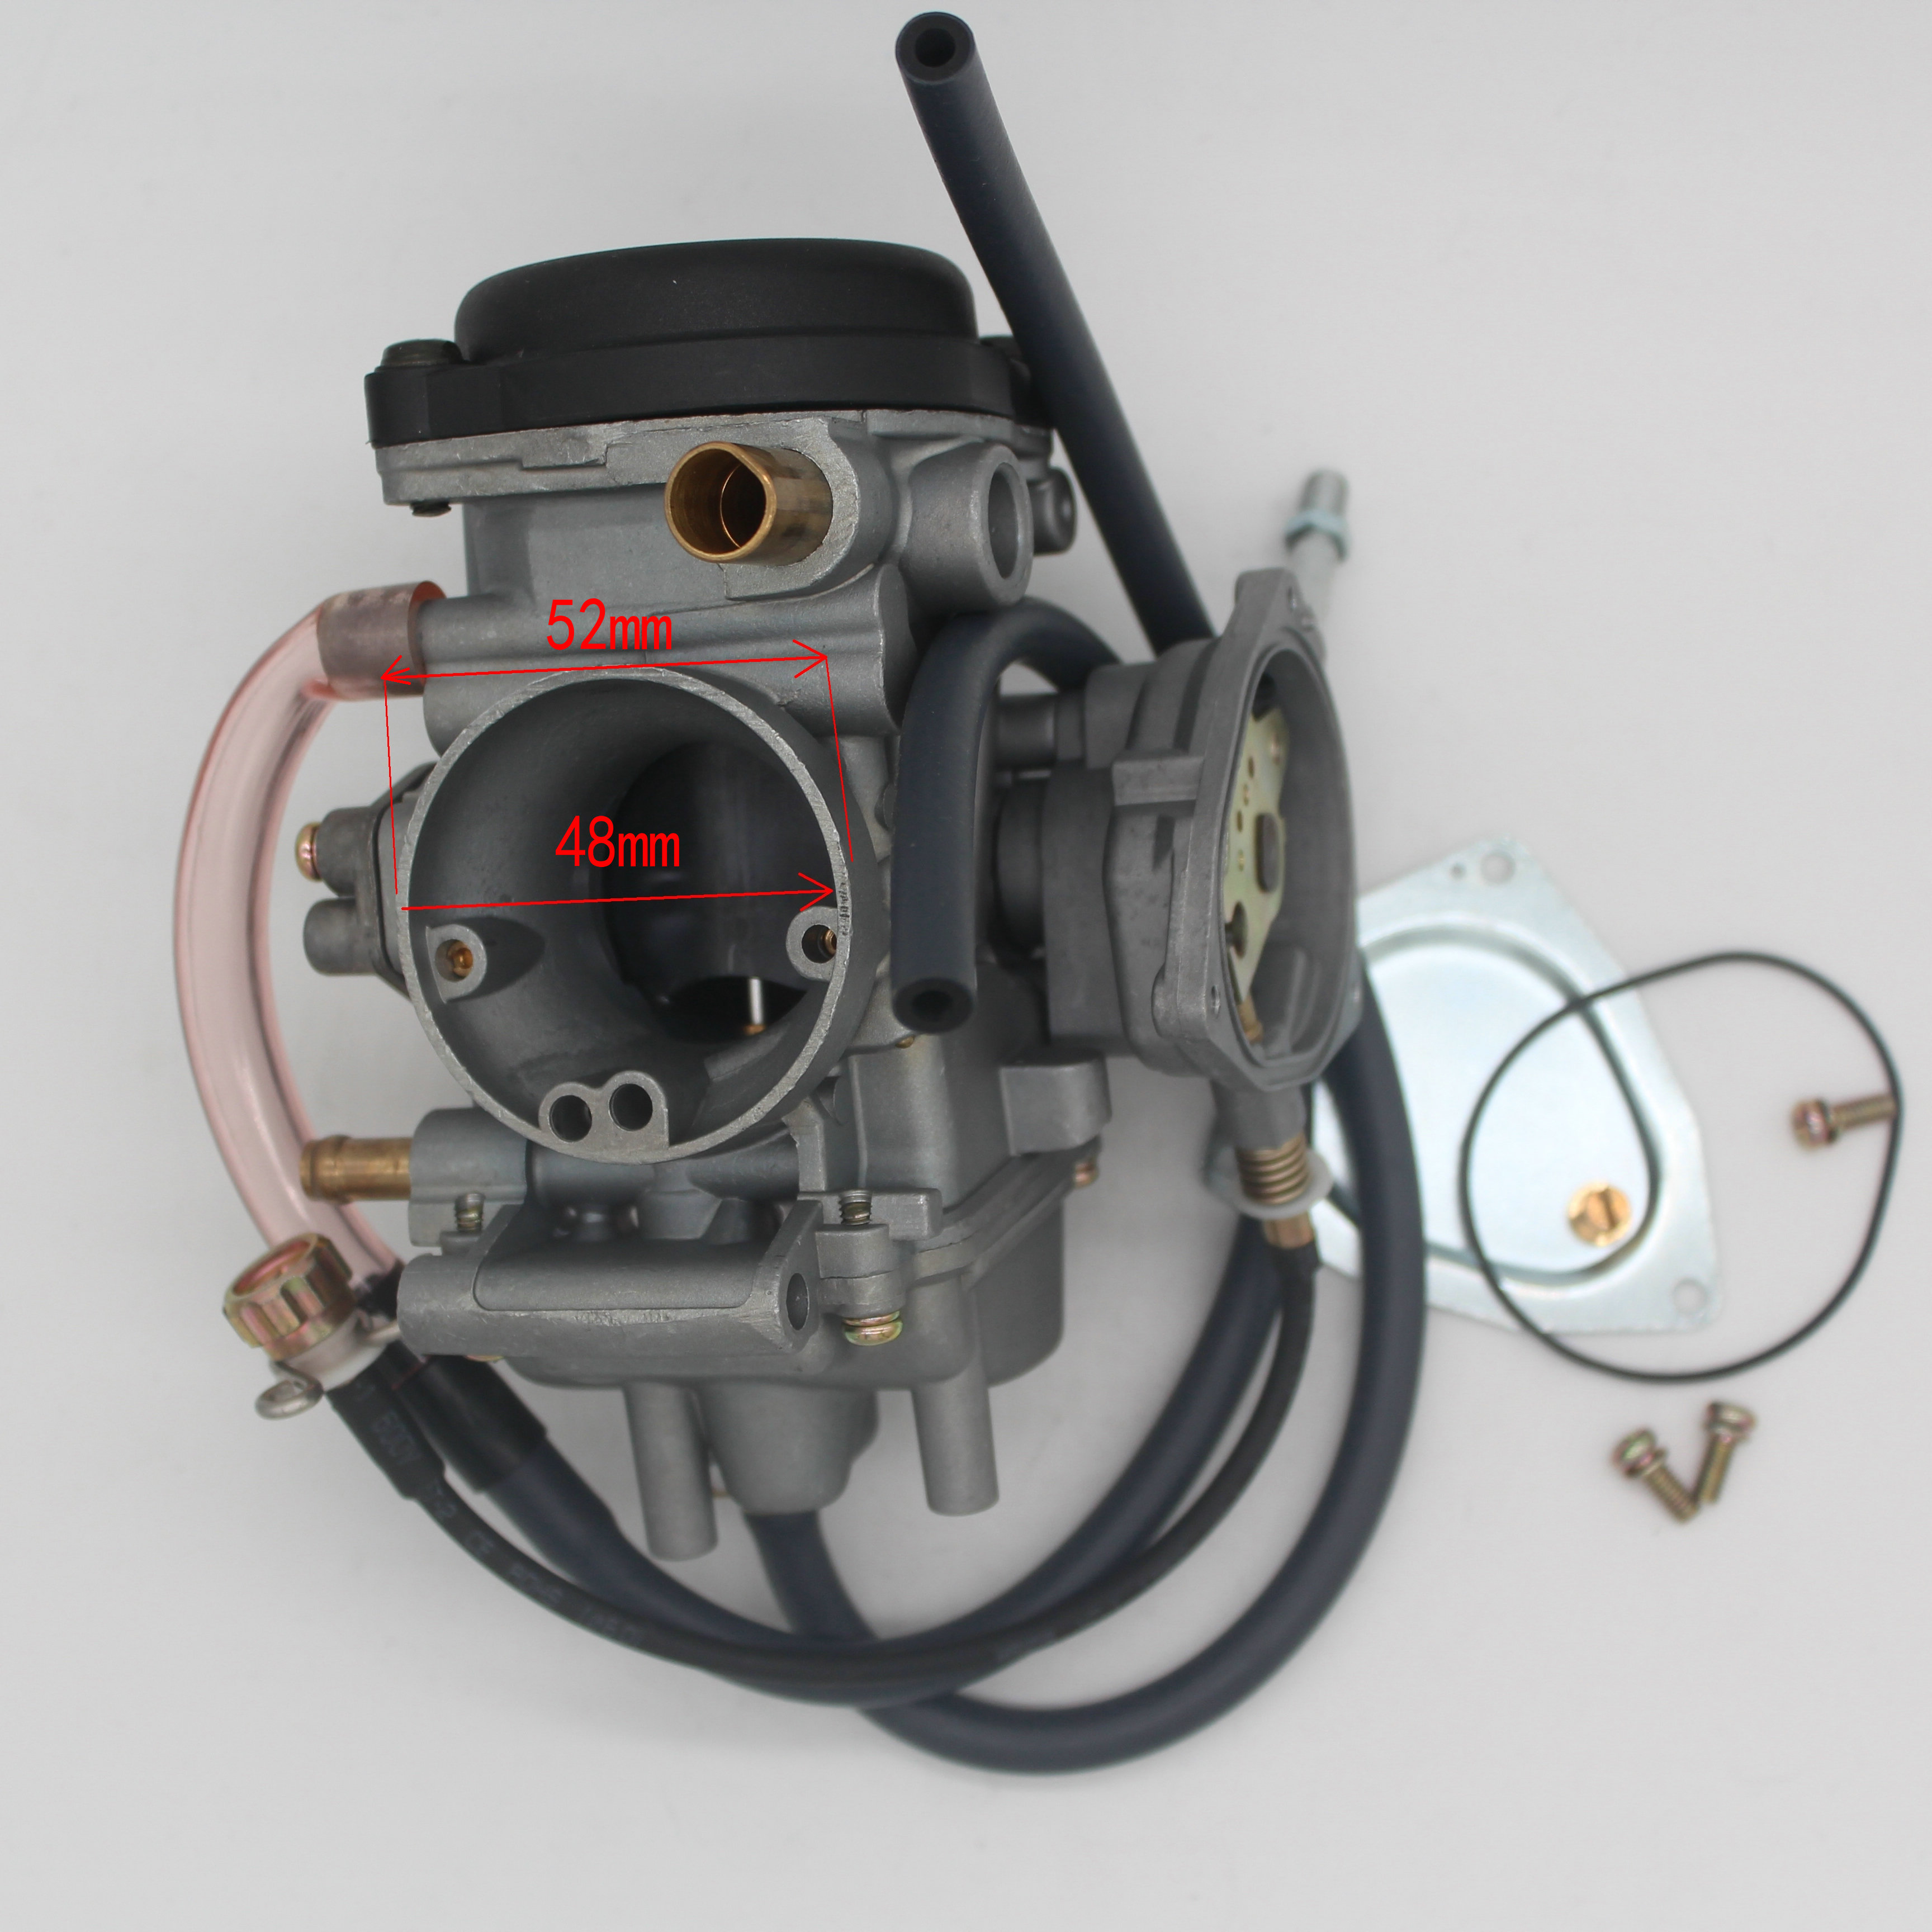 PD33J 33mm Motorcycle carburetor fit for YAMAHA KODIAK 450 YFM450 4X4 2003 2005 BRUIN 350 2WD 4X4 CARB motorcycle accessories